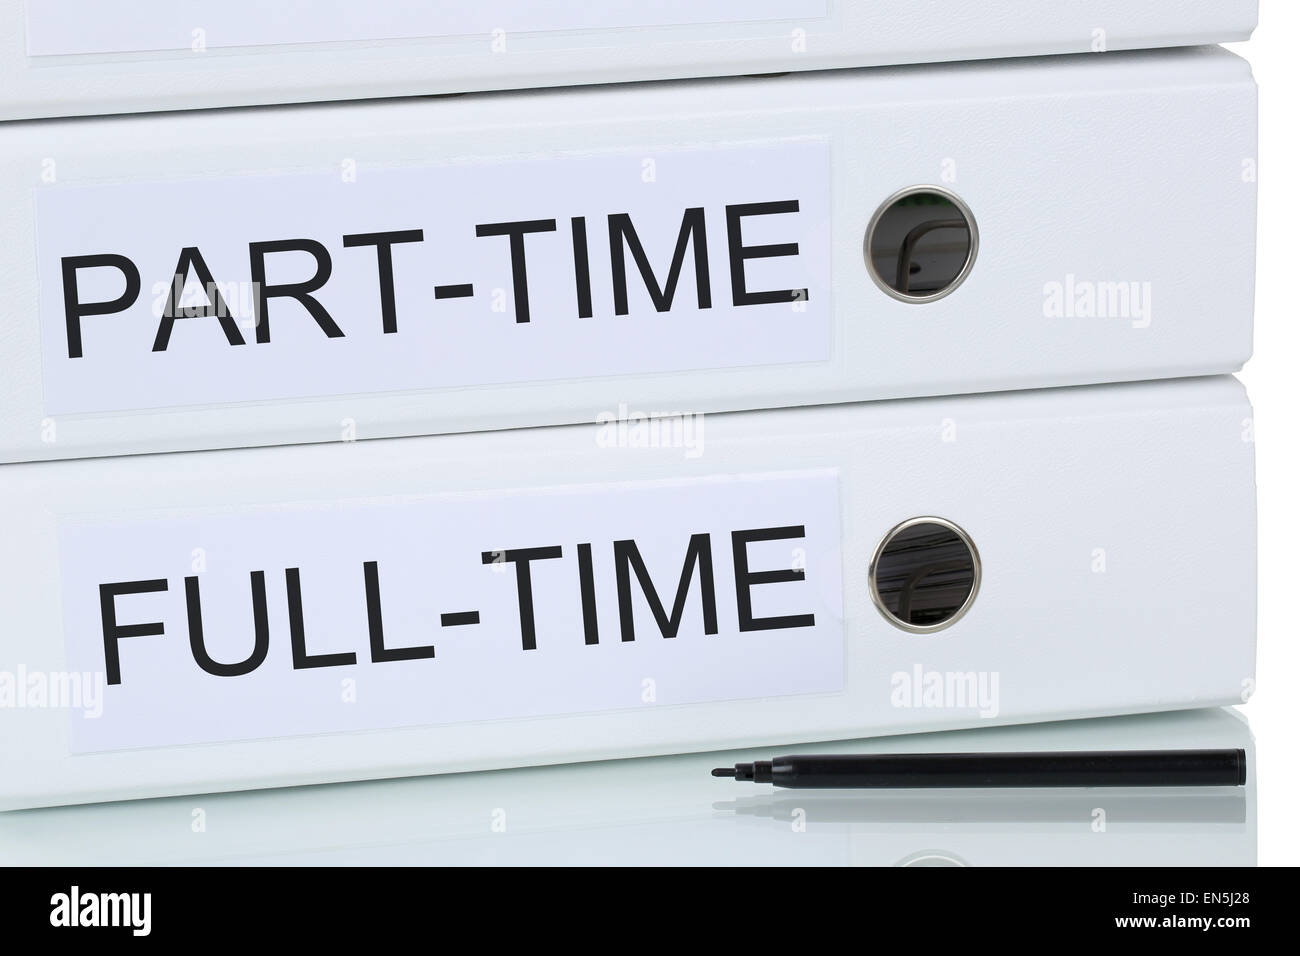 Part-time and full-time job working employment business concept - Stock Image